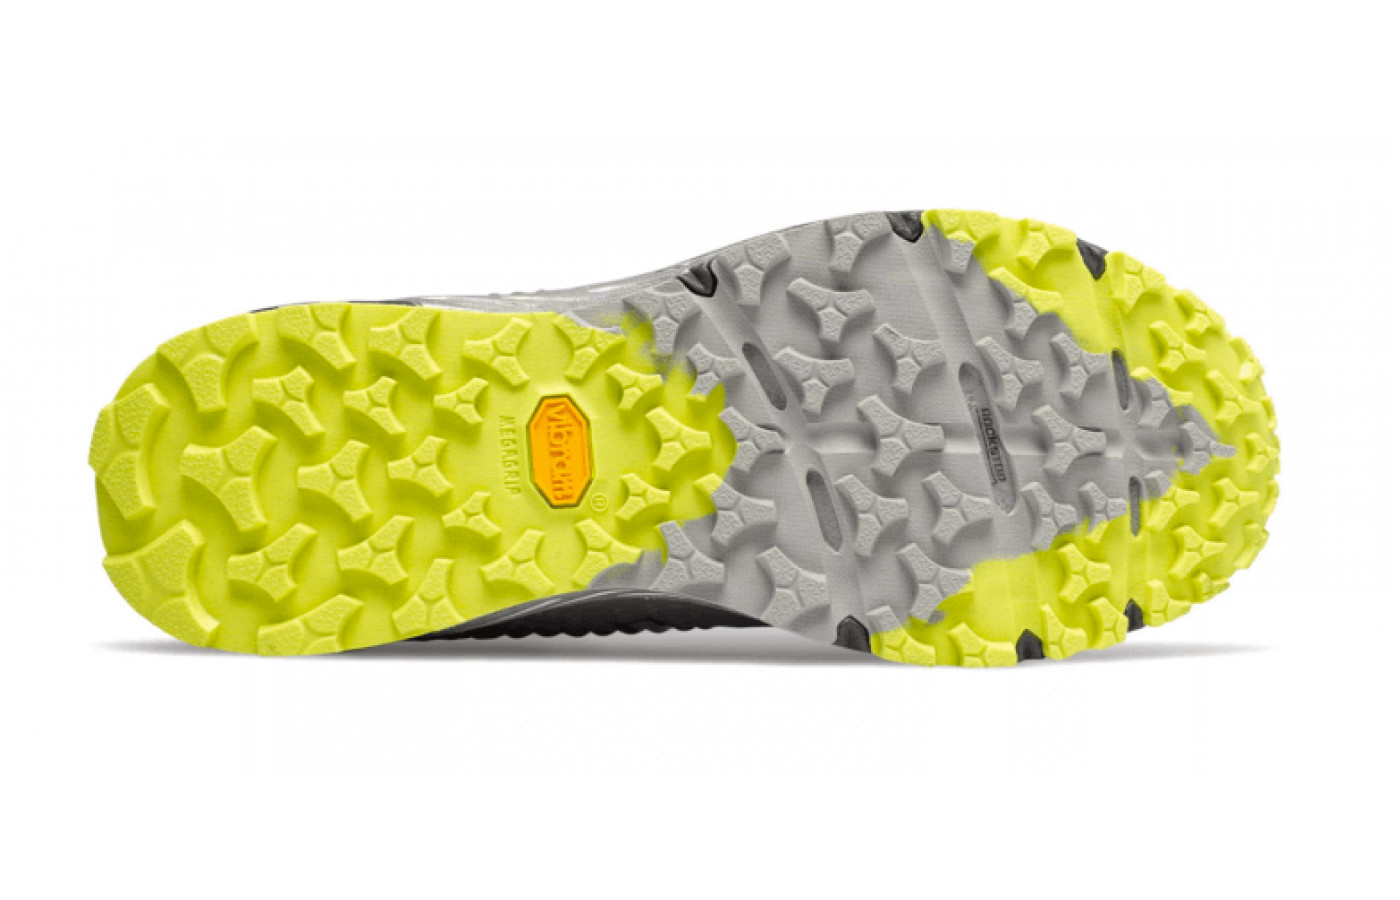 The Summit KOM features a highly durable Vibram outsole